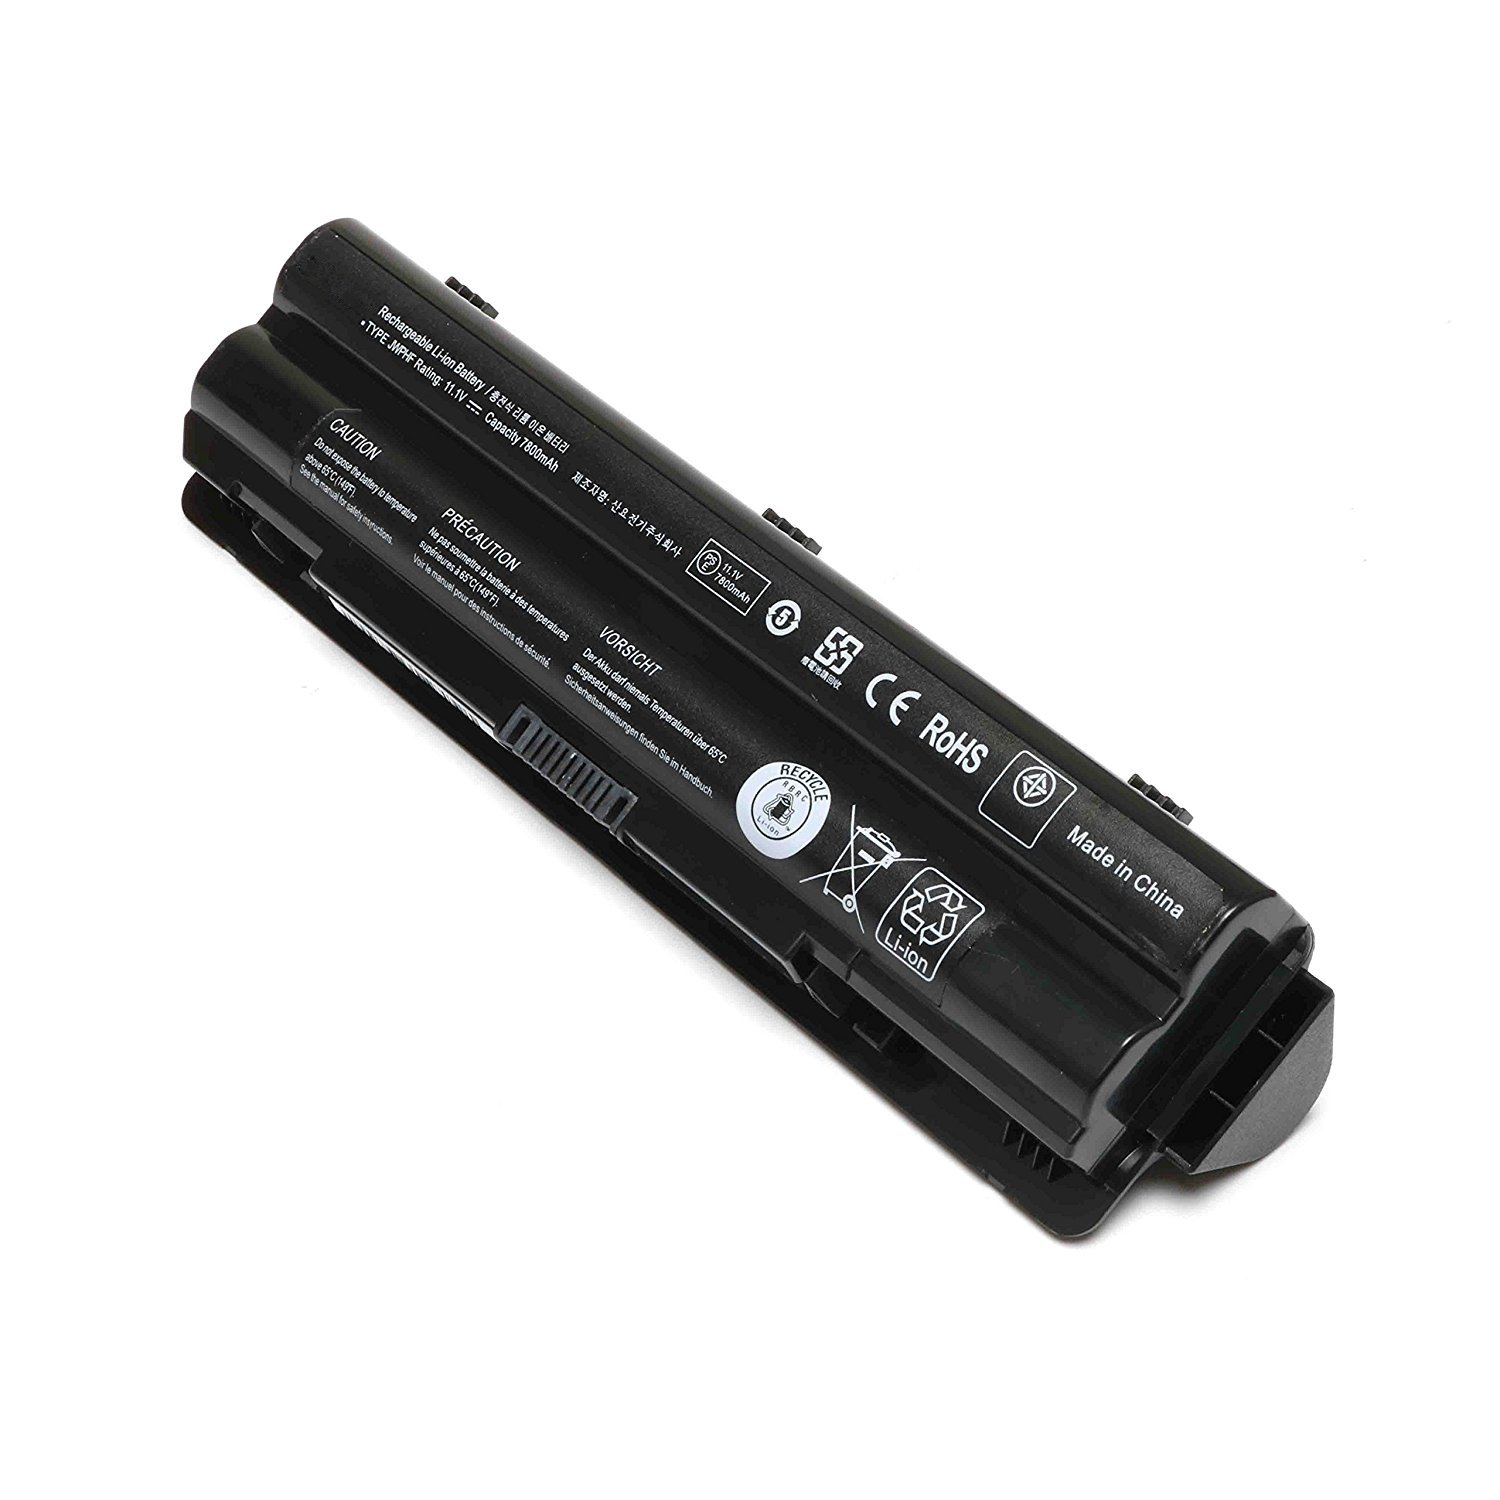 Amazon.com: 9 Cell Replacement Laptop Battery for XPS 15 (L502X L501X) / XPS 14 (L401X) / XPS 17 (L701X), fits P/N:JWPHFJ70W7 R795X: Computers & Accessories